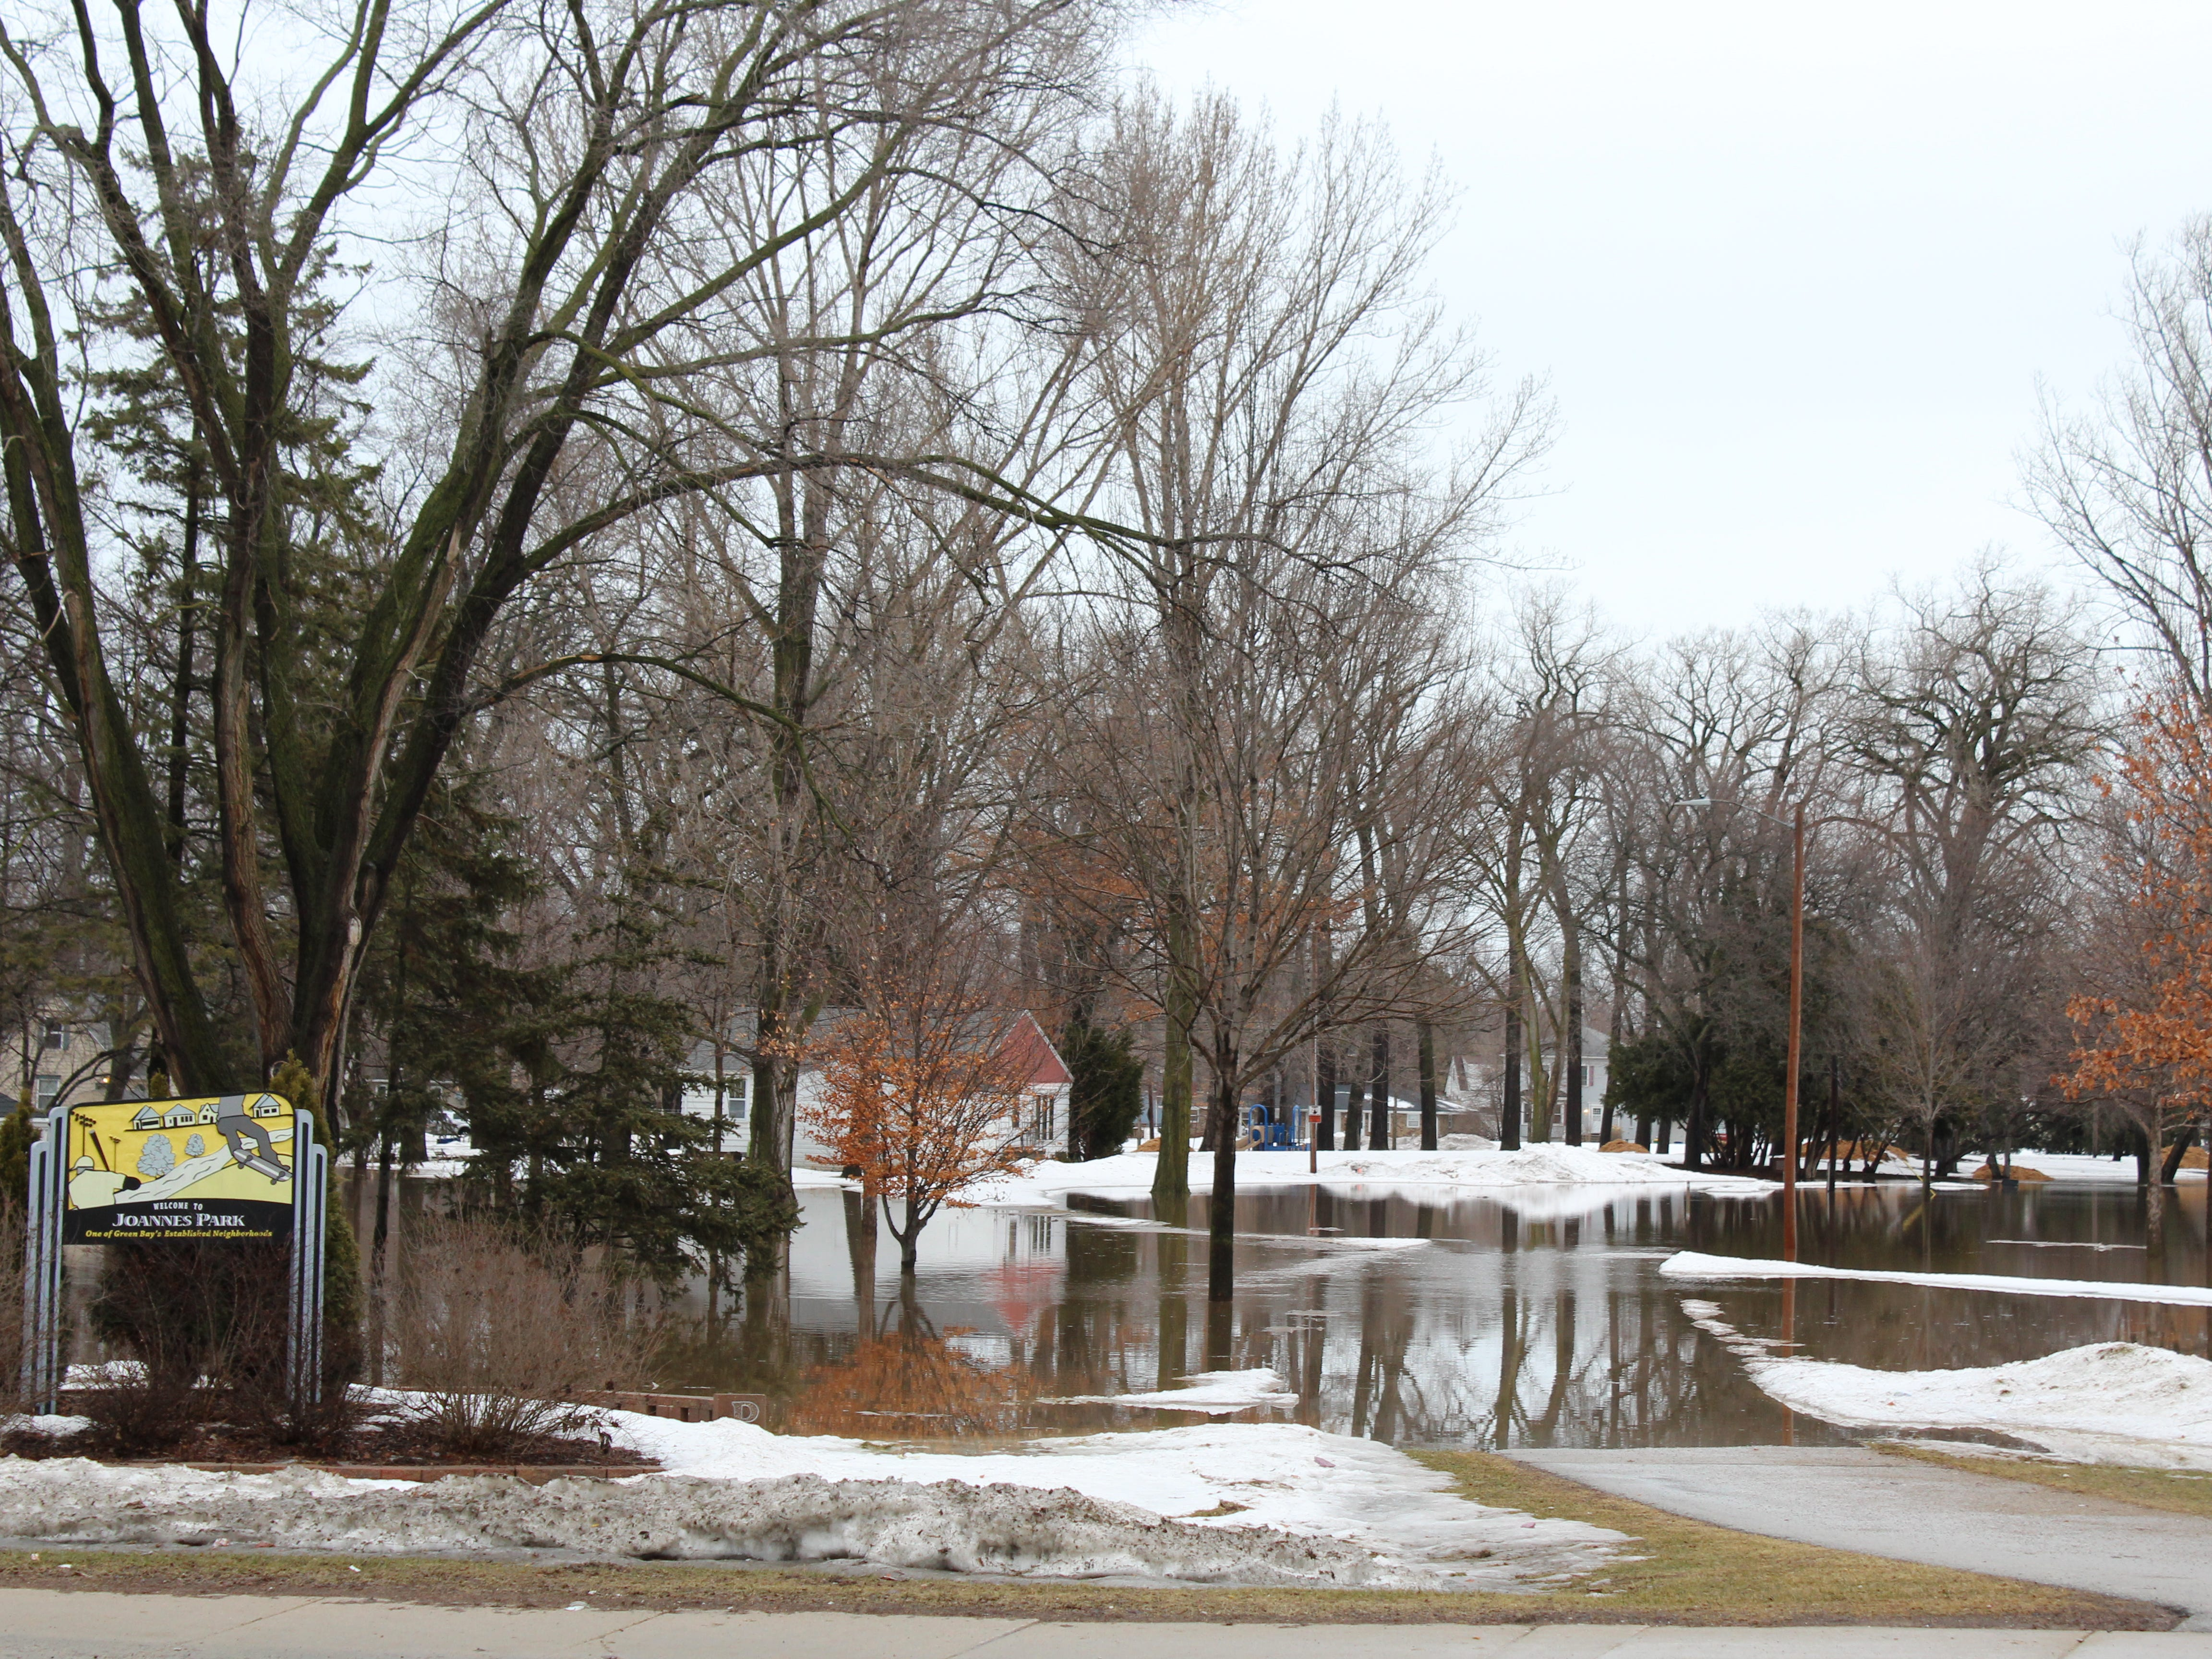 Most of Joannnes Park was under water Friday morning.